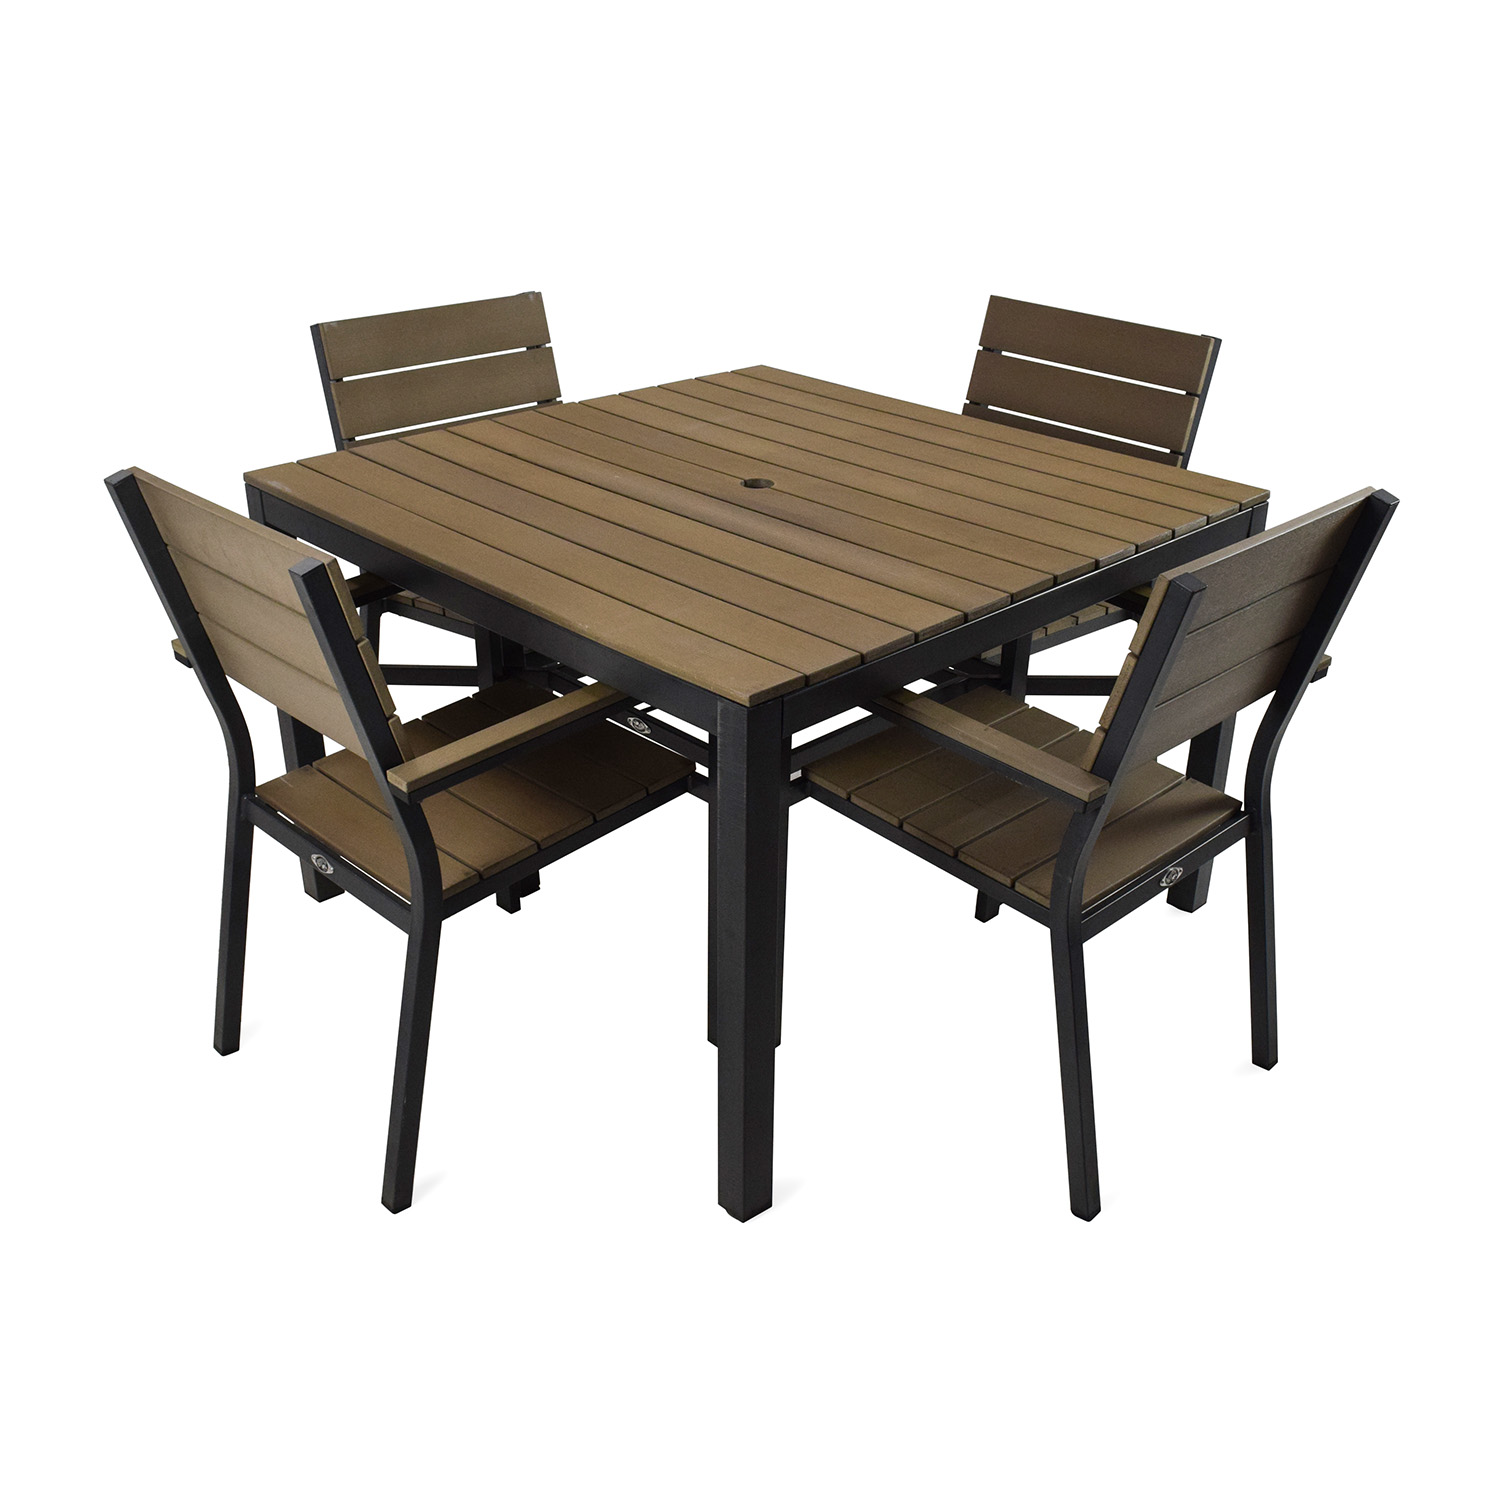 Home Depot Hampton Bay Northridge 5 Piece Patio Dining Set Coupon